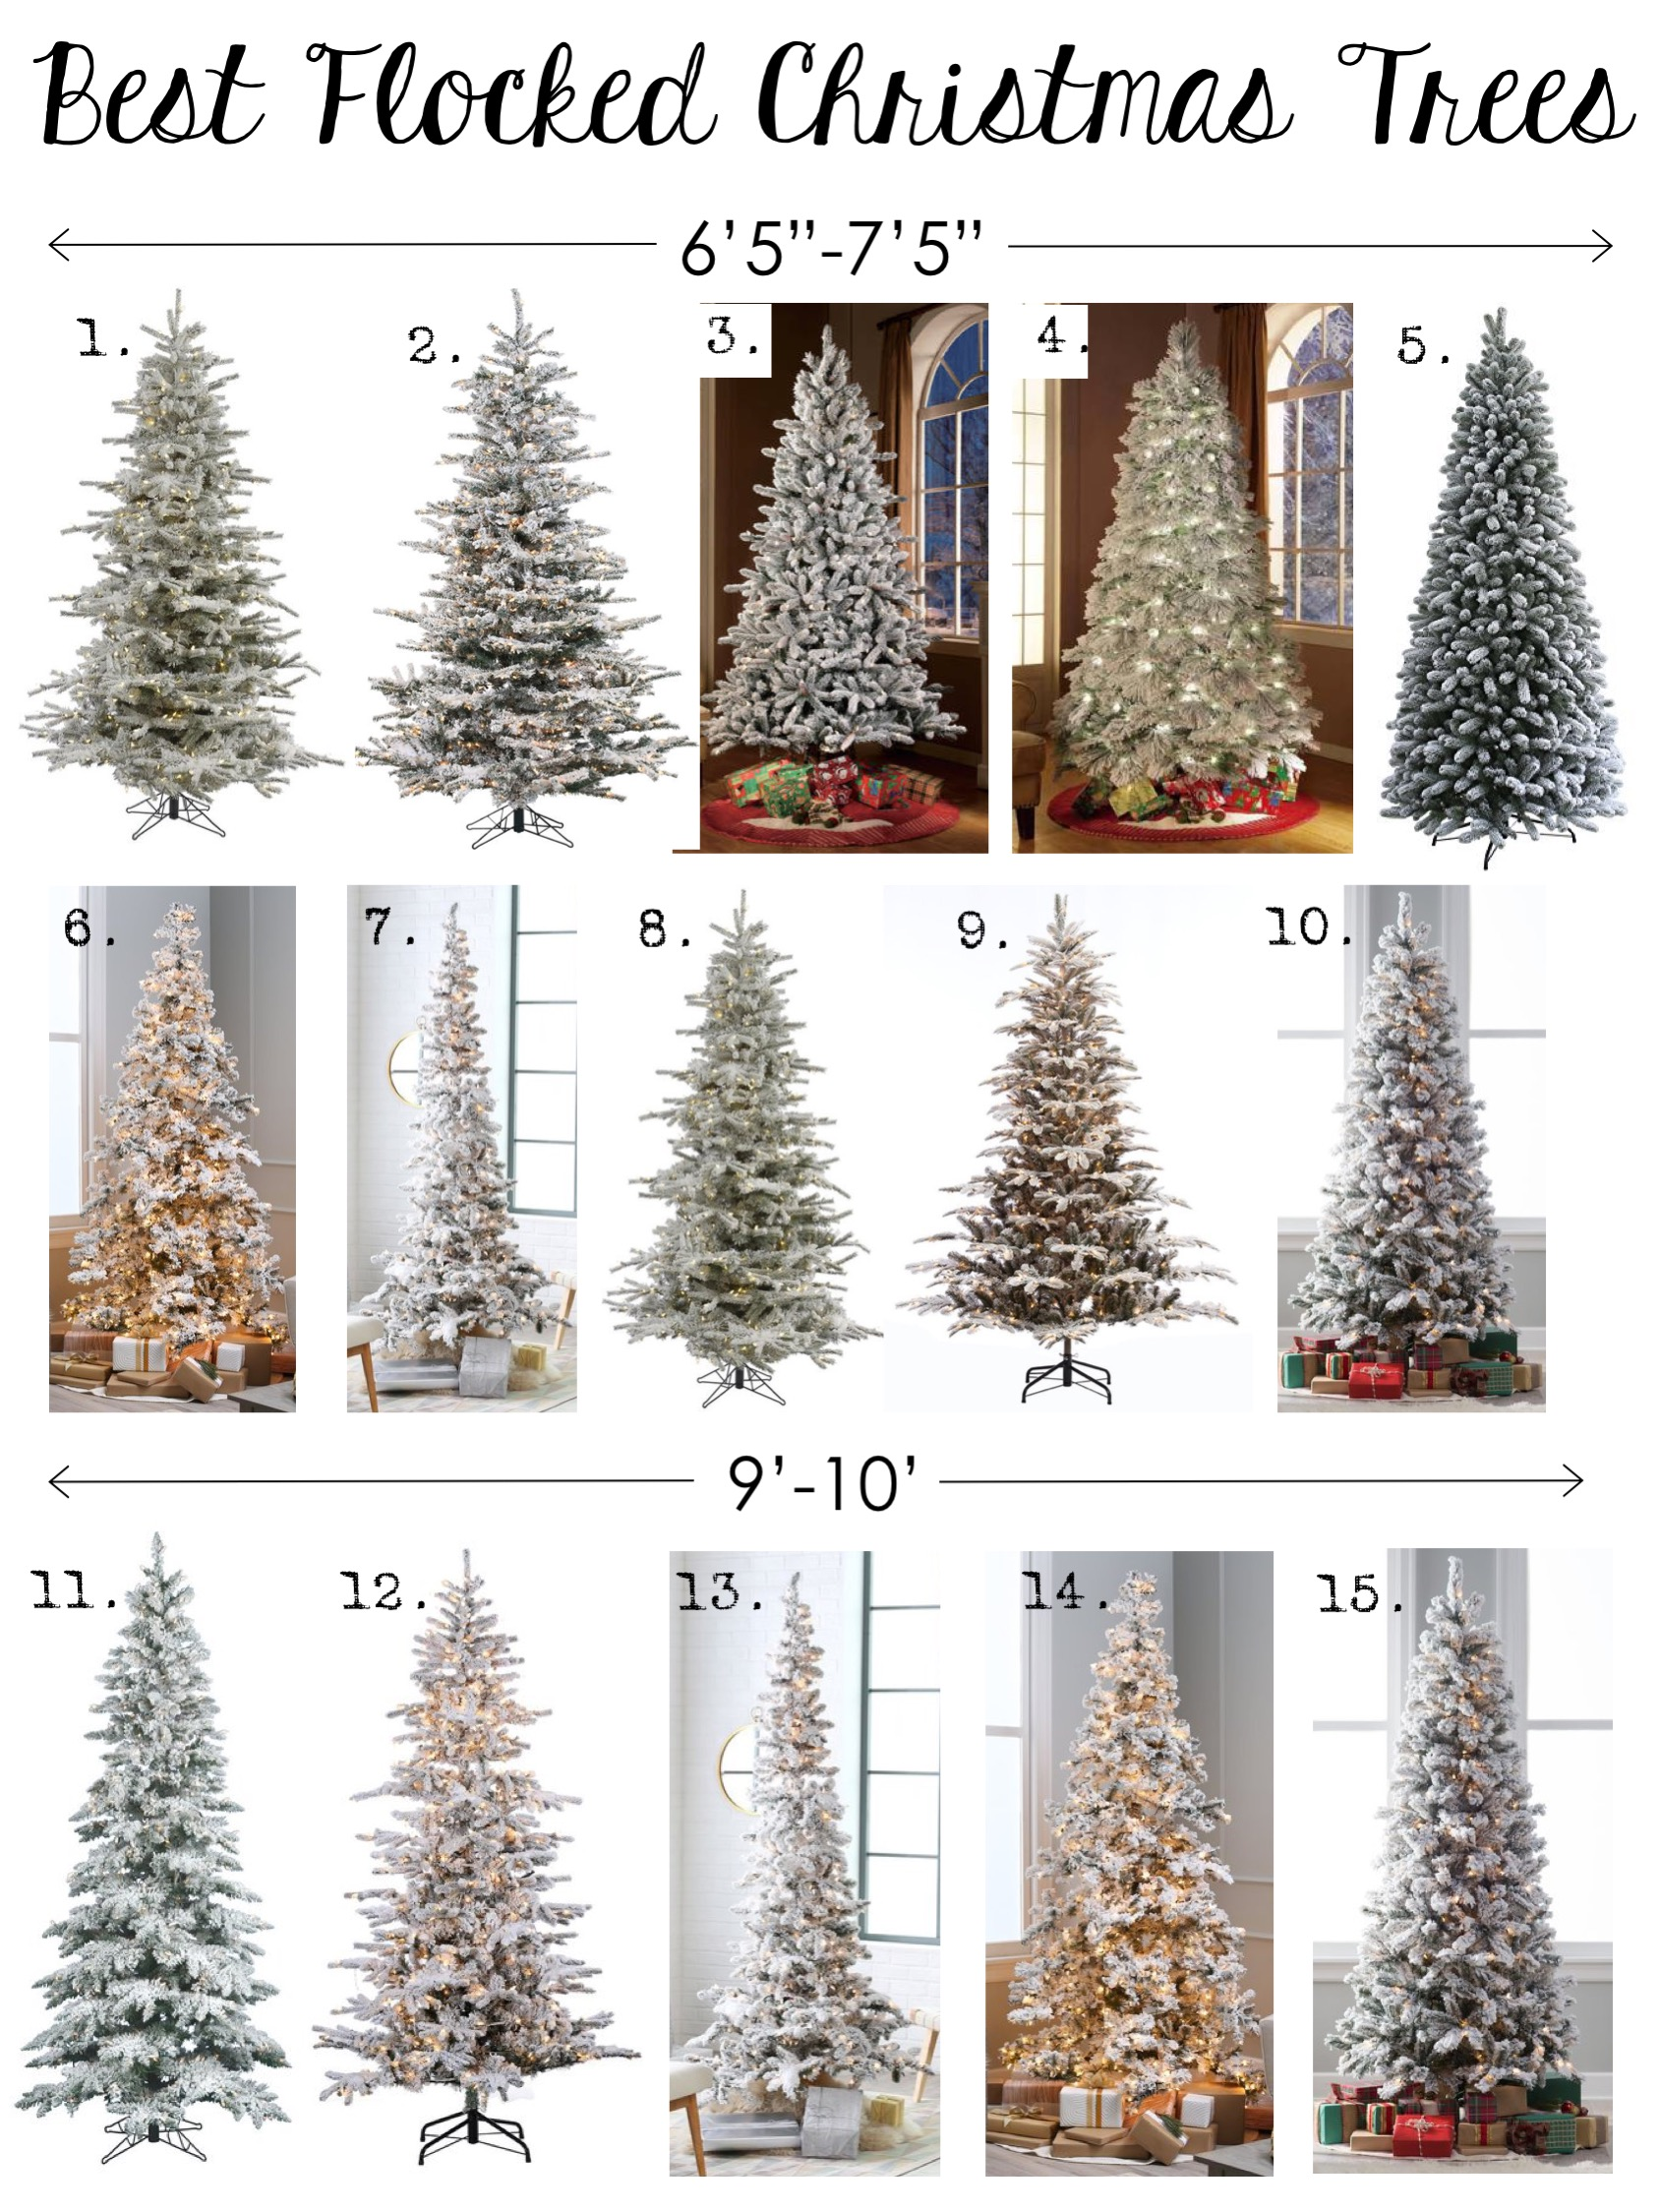 Best Flocked Christmas Trees: Multiple Sizes & Styles